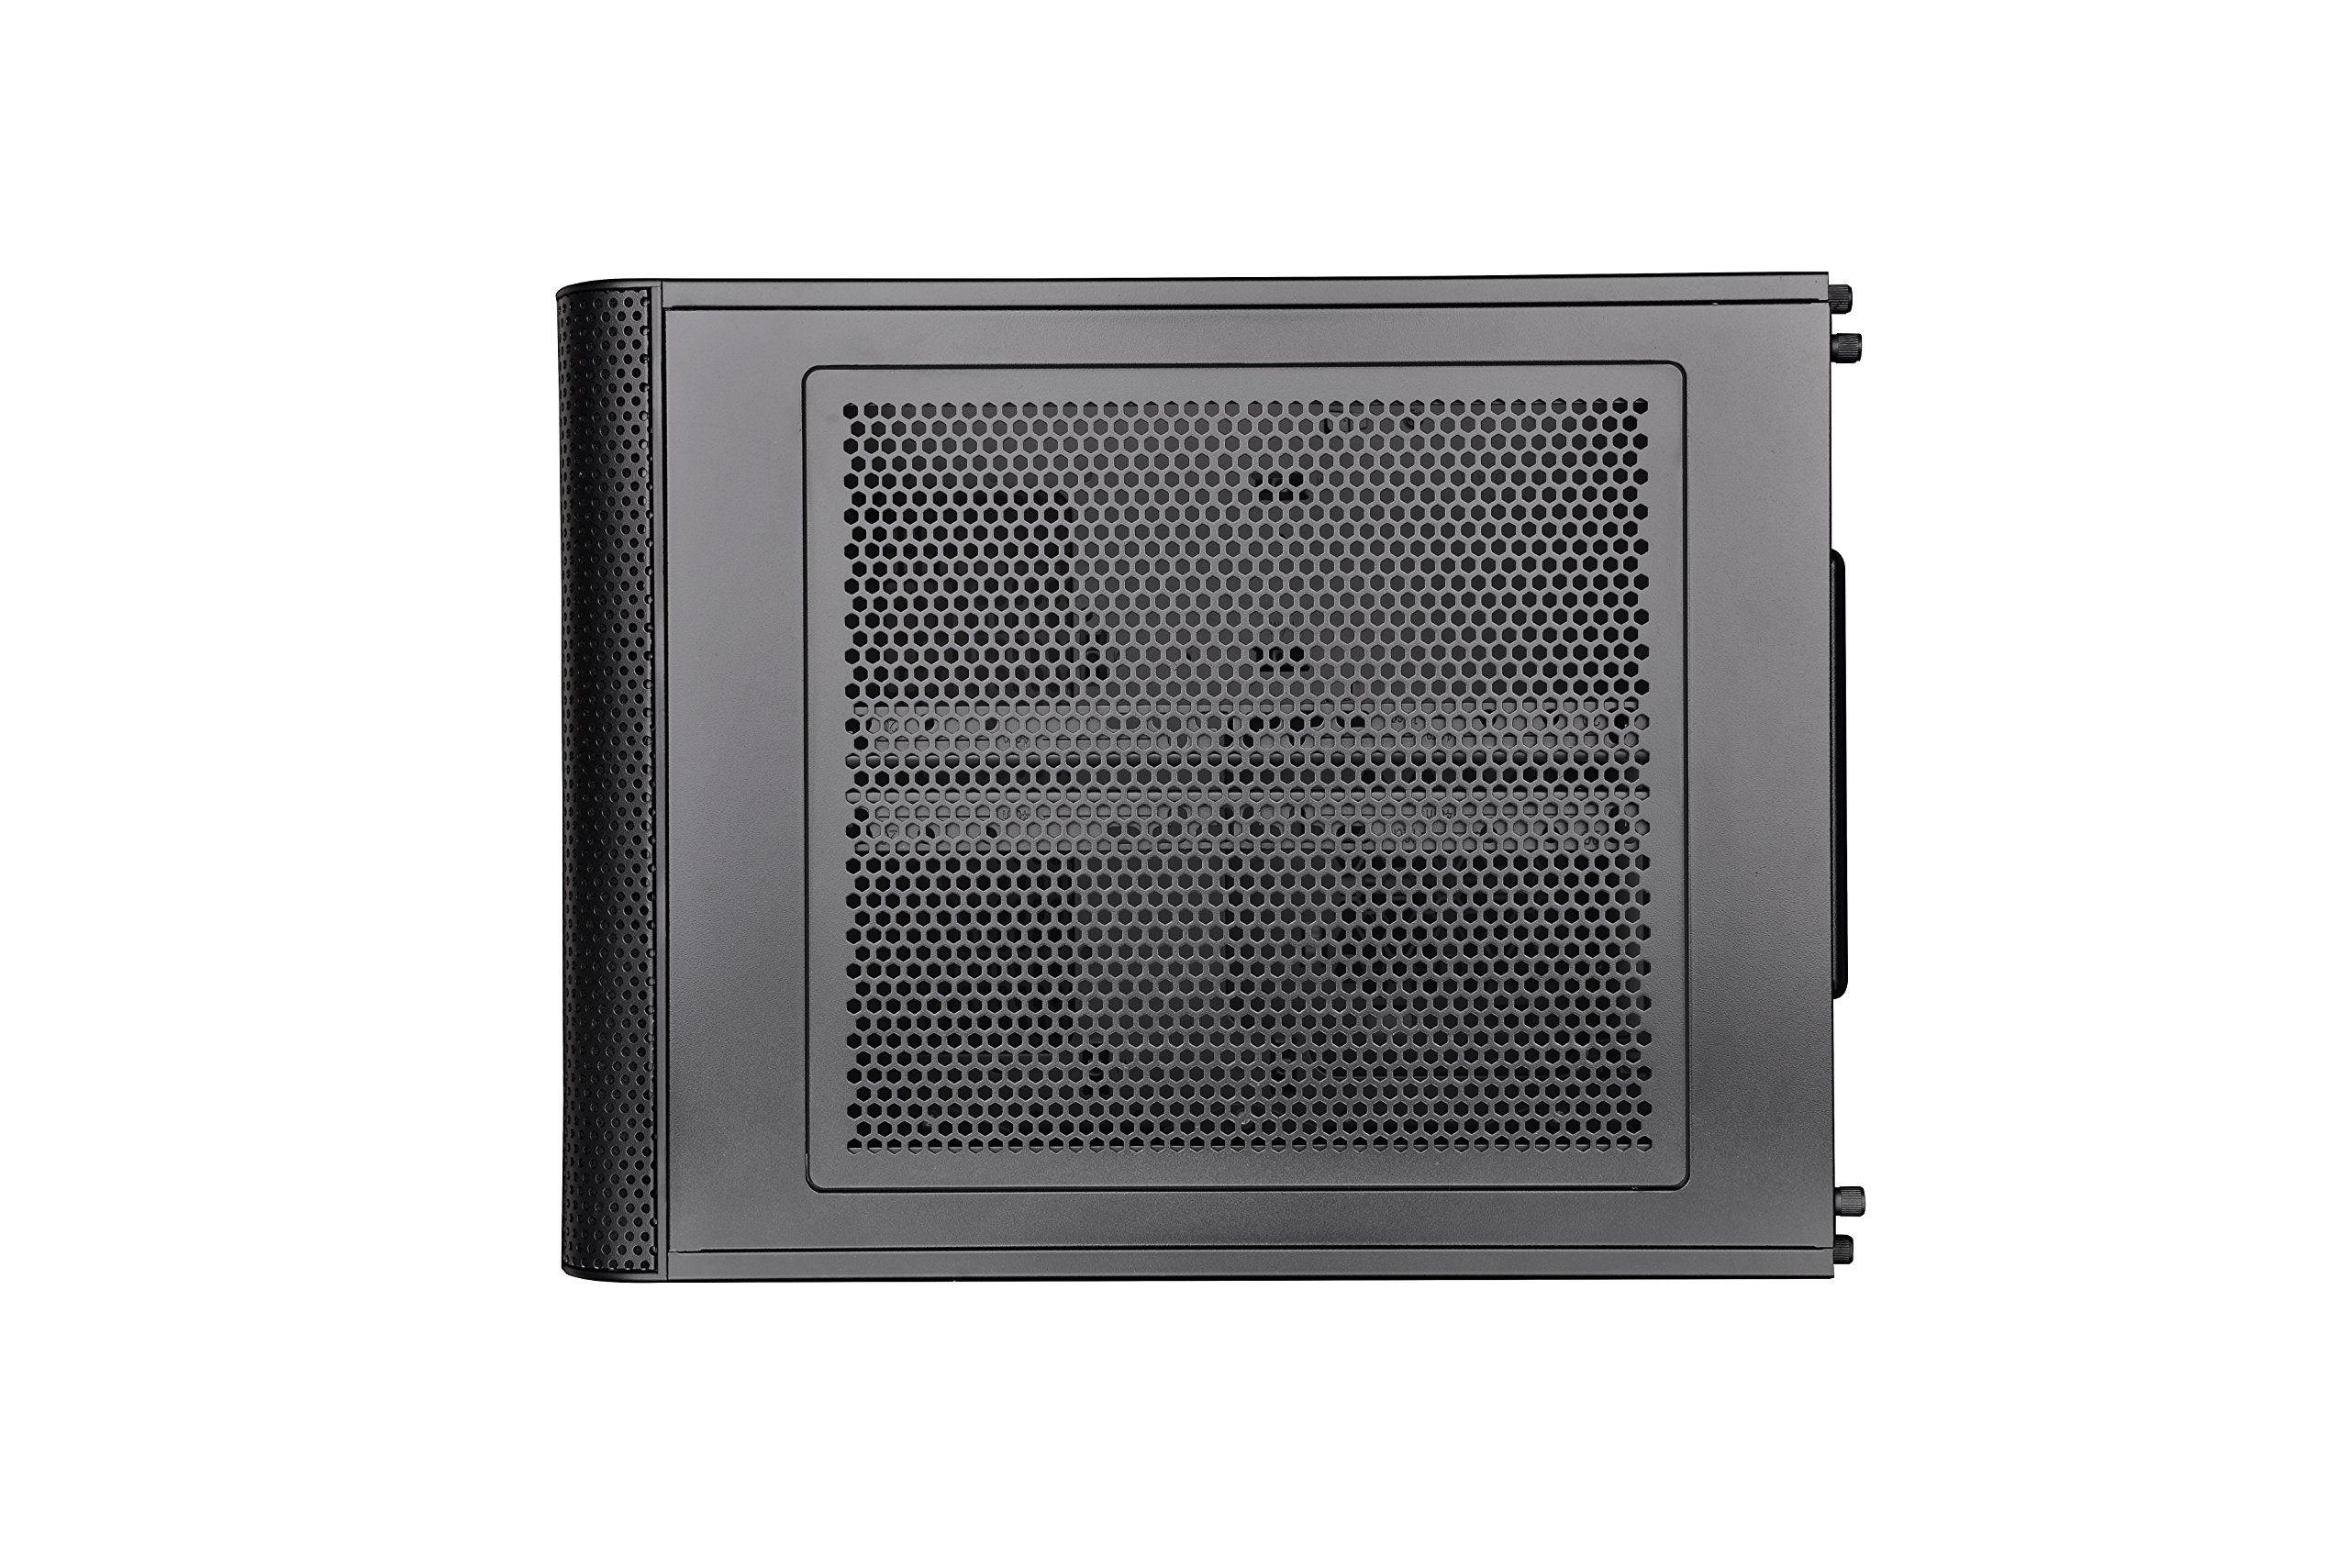 Thermaltake Core V21 SPCC Micro ATX, Mini ITX Cube Gaming Computer Case Chassis, Small Form Factor Builds, 200mm Front Fan Pre-installed, CA-1D5-00S1WN-00 by Thermaltake (Image #22)